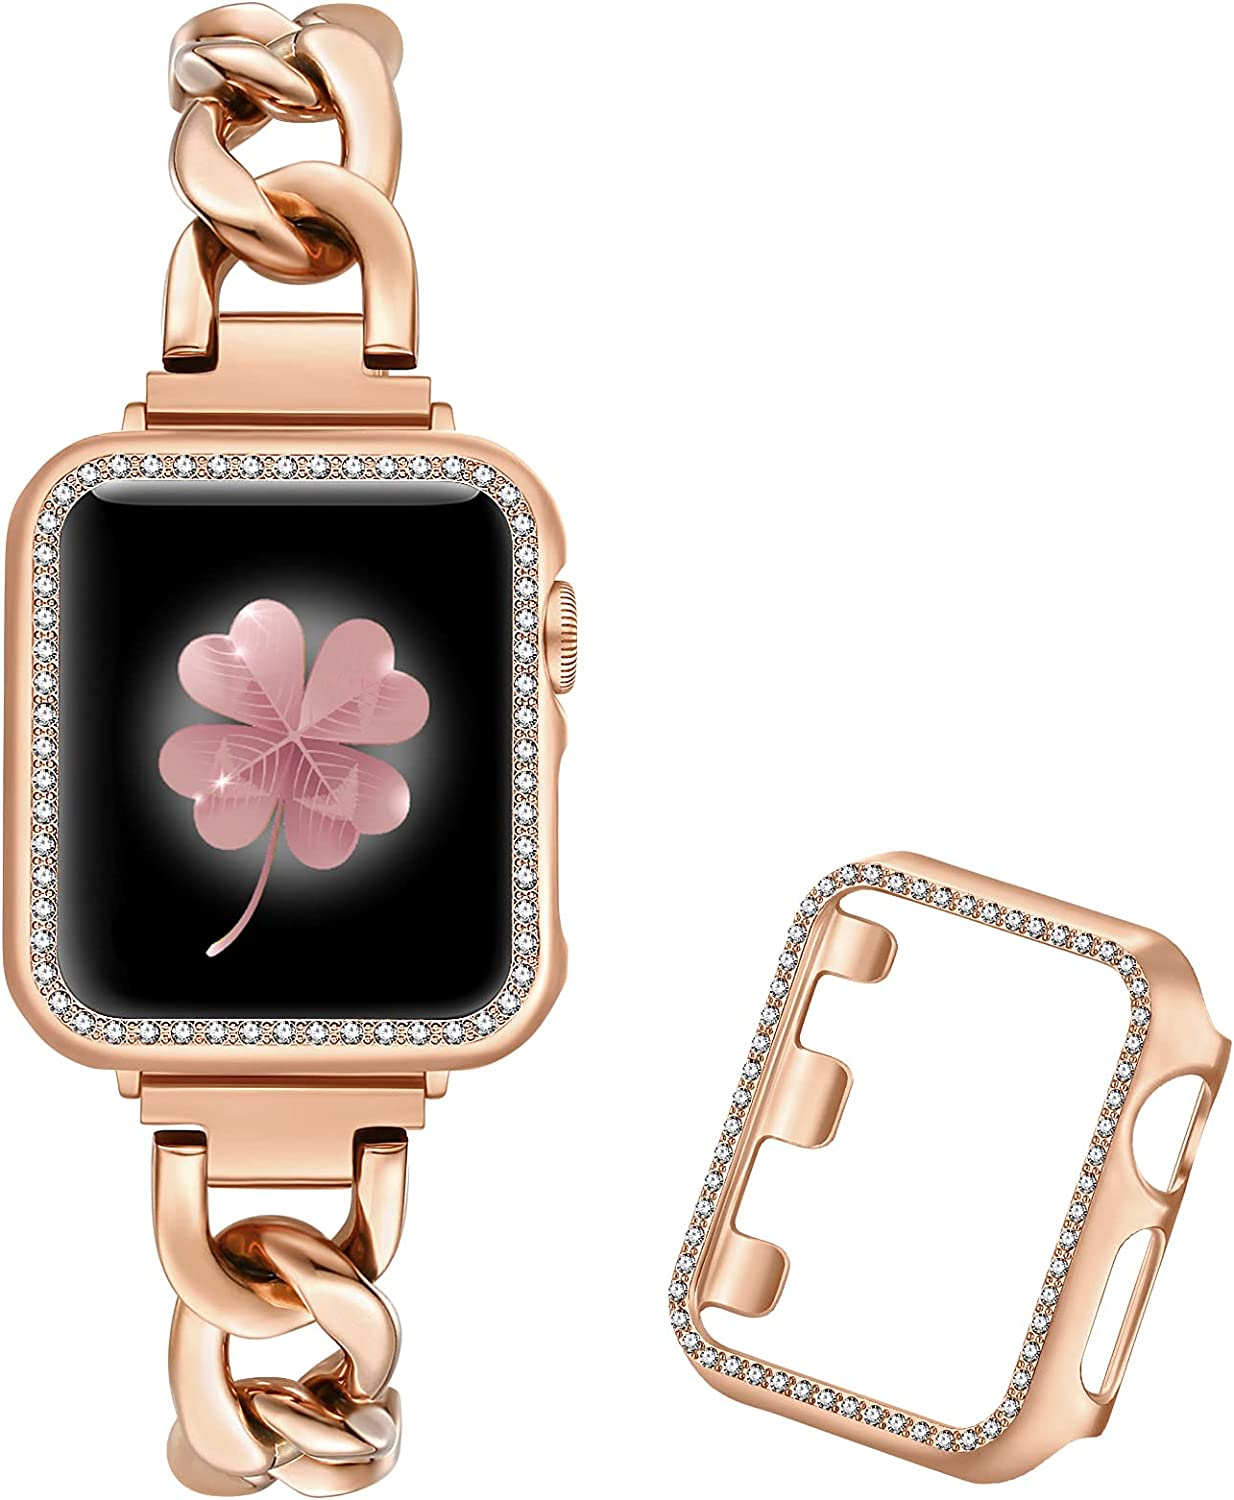 Dilando Cool Chain Metal Link Bands Compatible with Apple Watch 38mm 40mm 42mm 44mm with Bling Case Women, Stainless Steel Band Case for Iwatch SE series 6 5 4 3 2 1 Rose Gold(Rose Gold, 38mm)